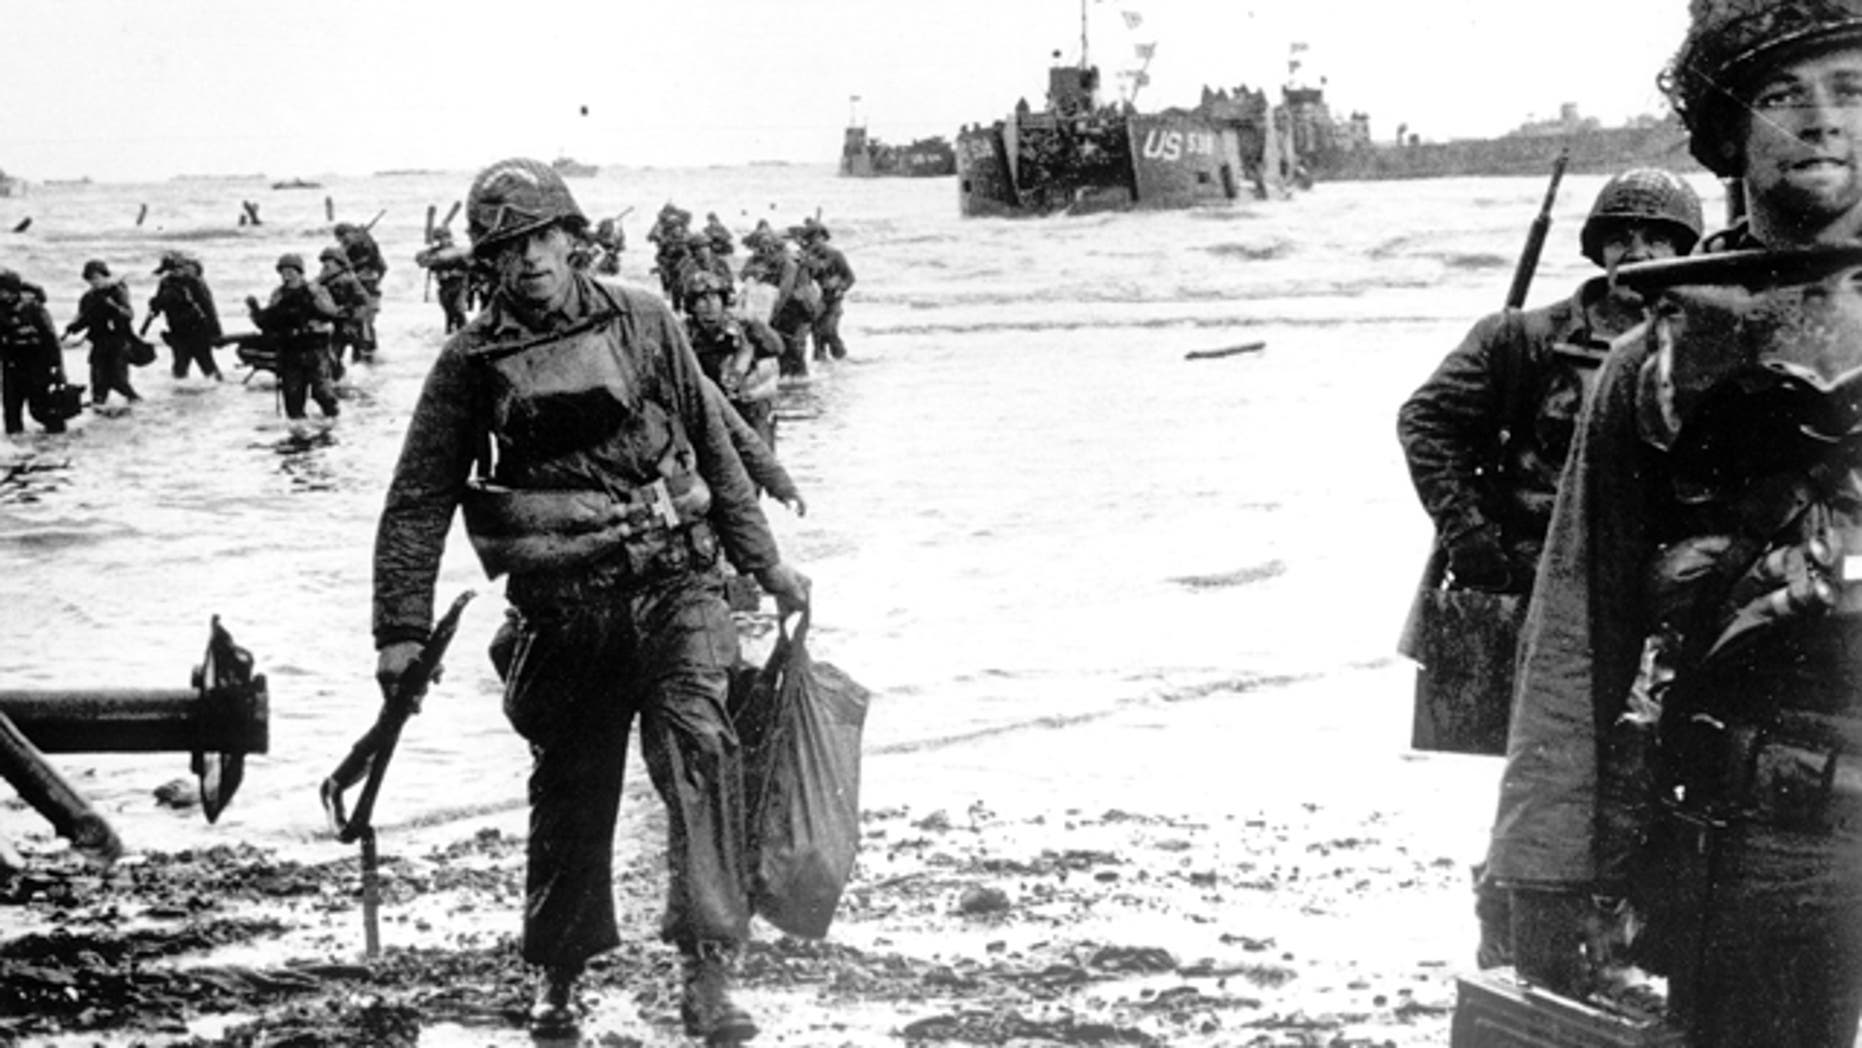 FILE: U.S. Army soldiers land on Omaha Beach during D-Day invasion, Normandy, France